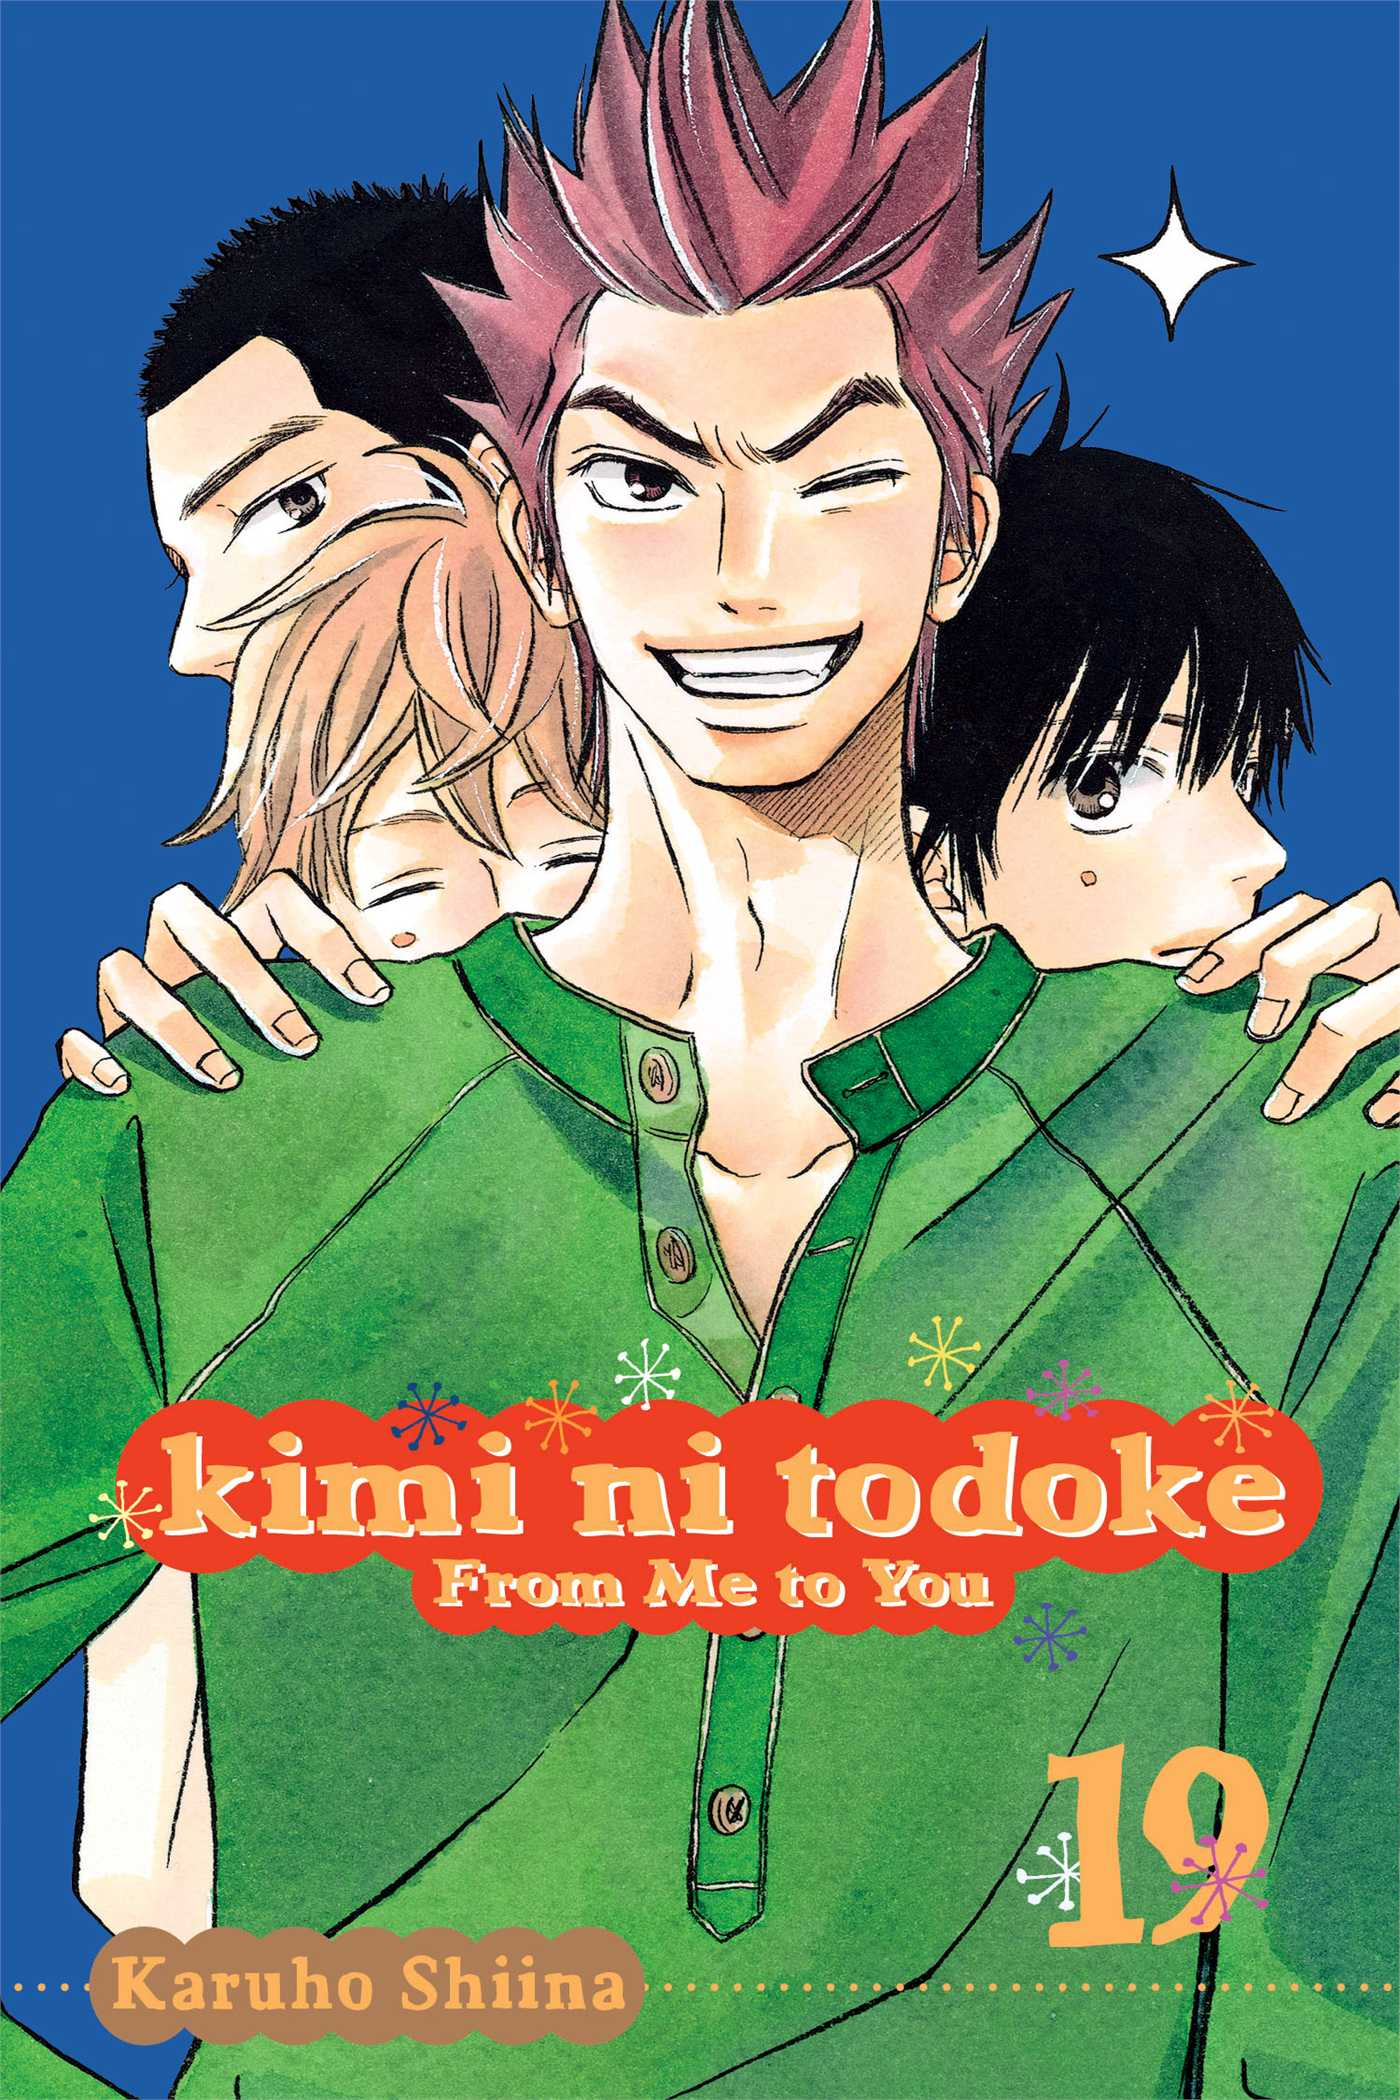 Kimi ni todoke from me to you vol 19 9781421567808 hr